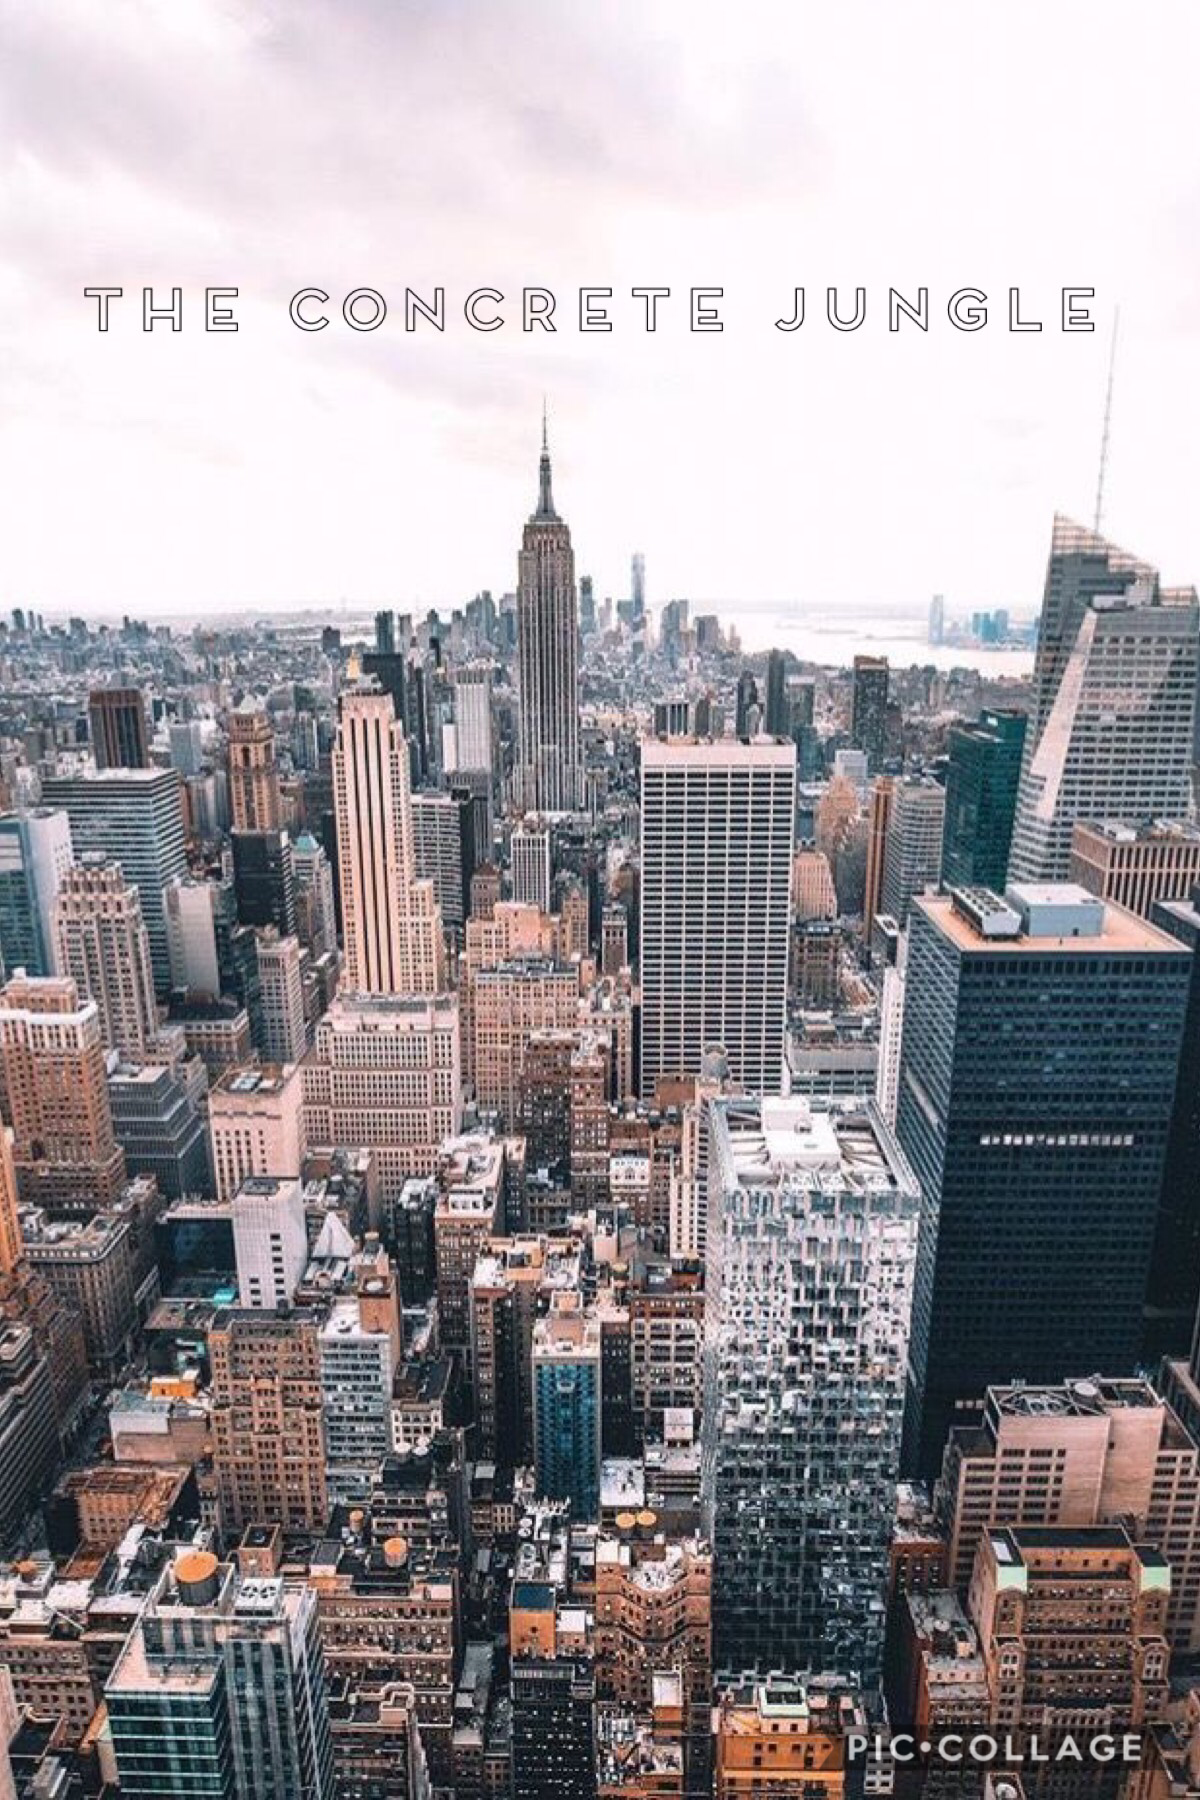 I'M OFFICIALLY GOING TO NYC IN AUGUST GUYS!!! but most of all, I'm going to Pennsylvania to meet and stay with my internet friend and we get to drive to nyc! I just booked my plane ticket yesterday & I'm beyond excited ❤️ this is my dream y'all